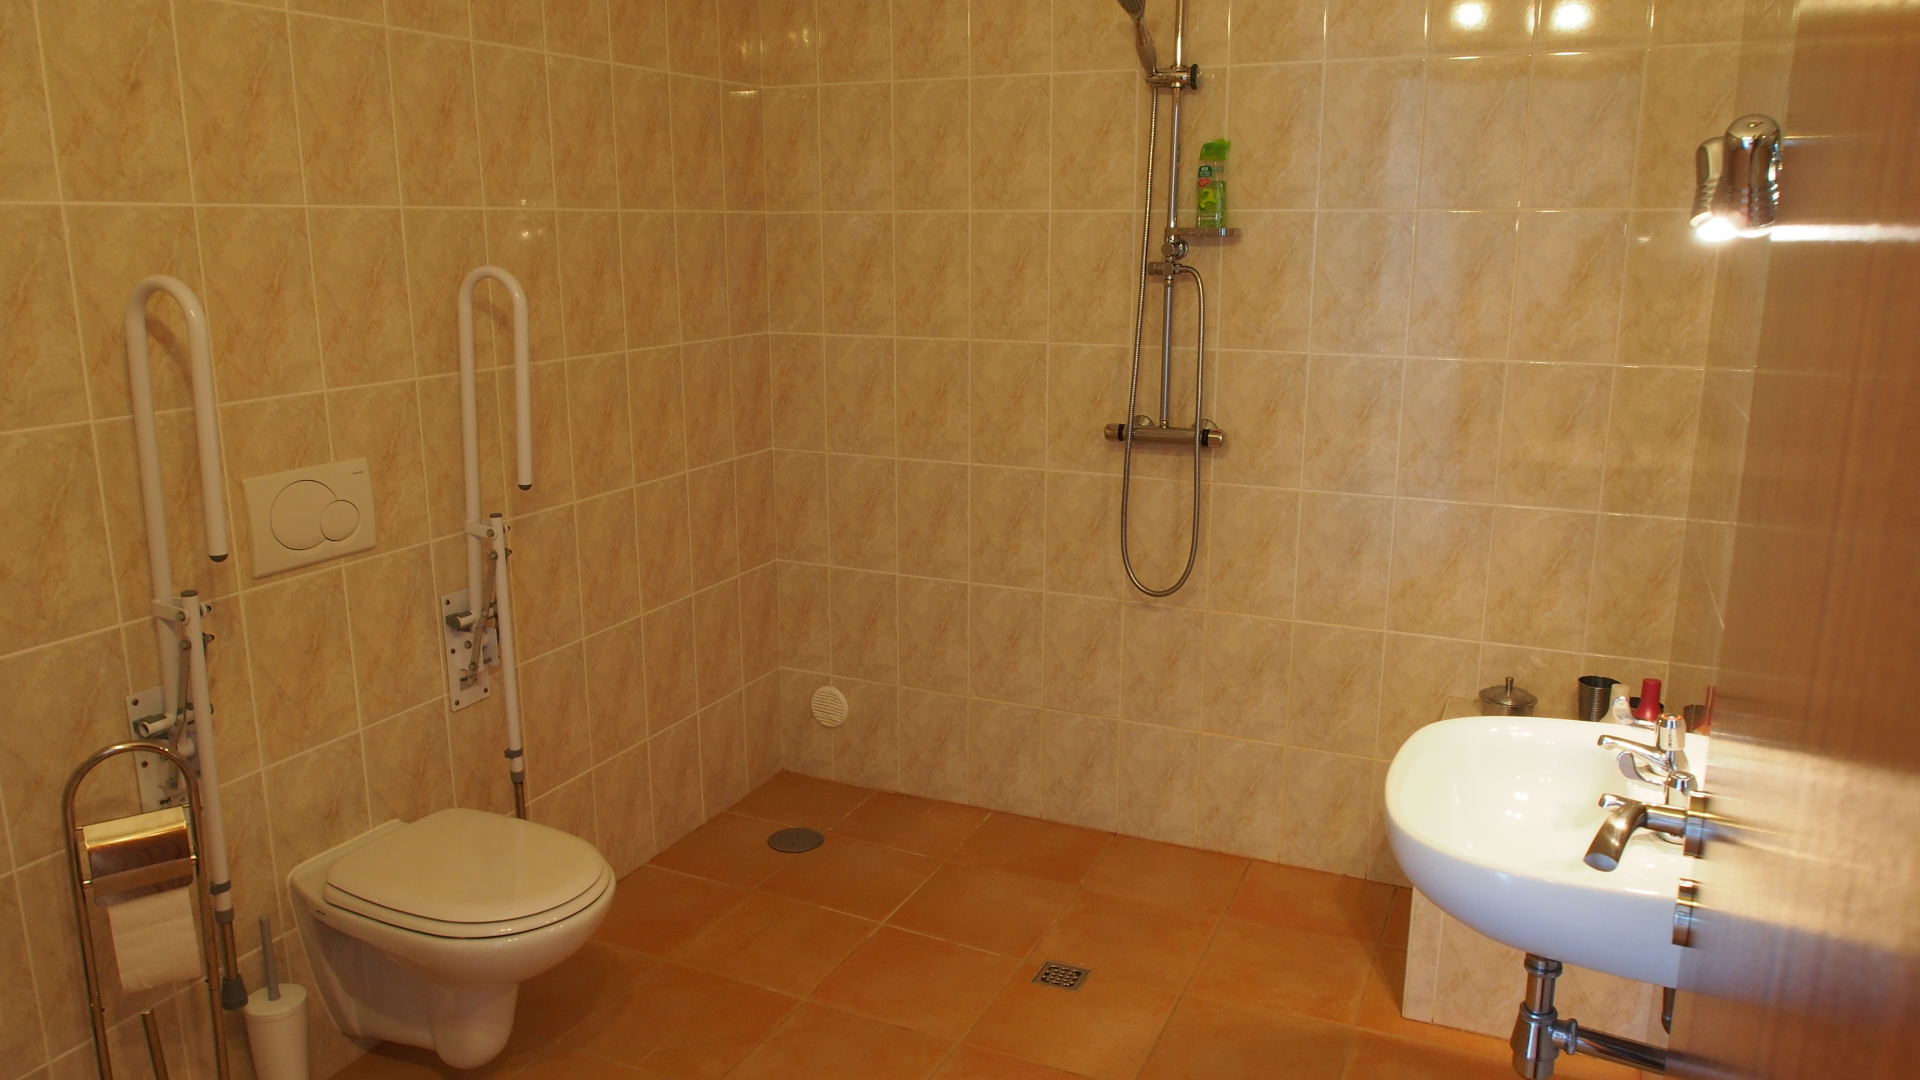 2 bed apartment wetroom